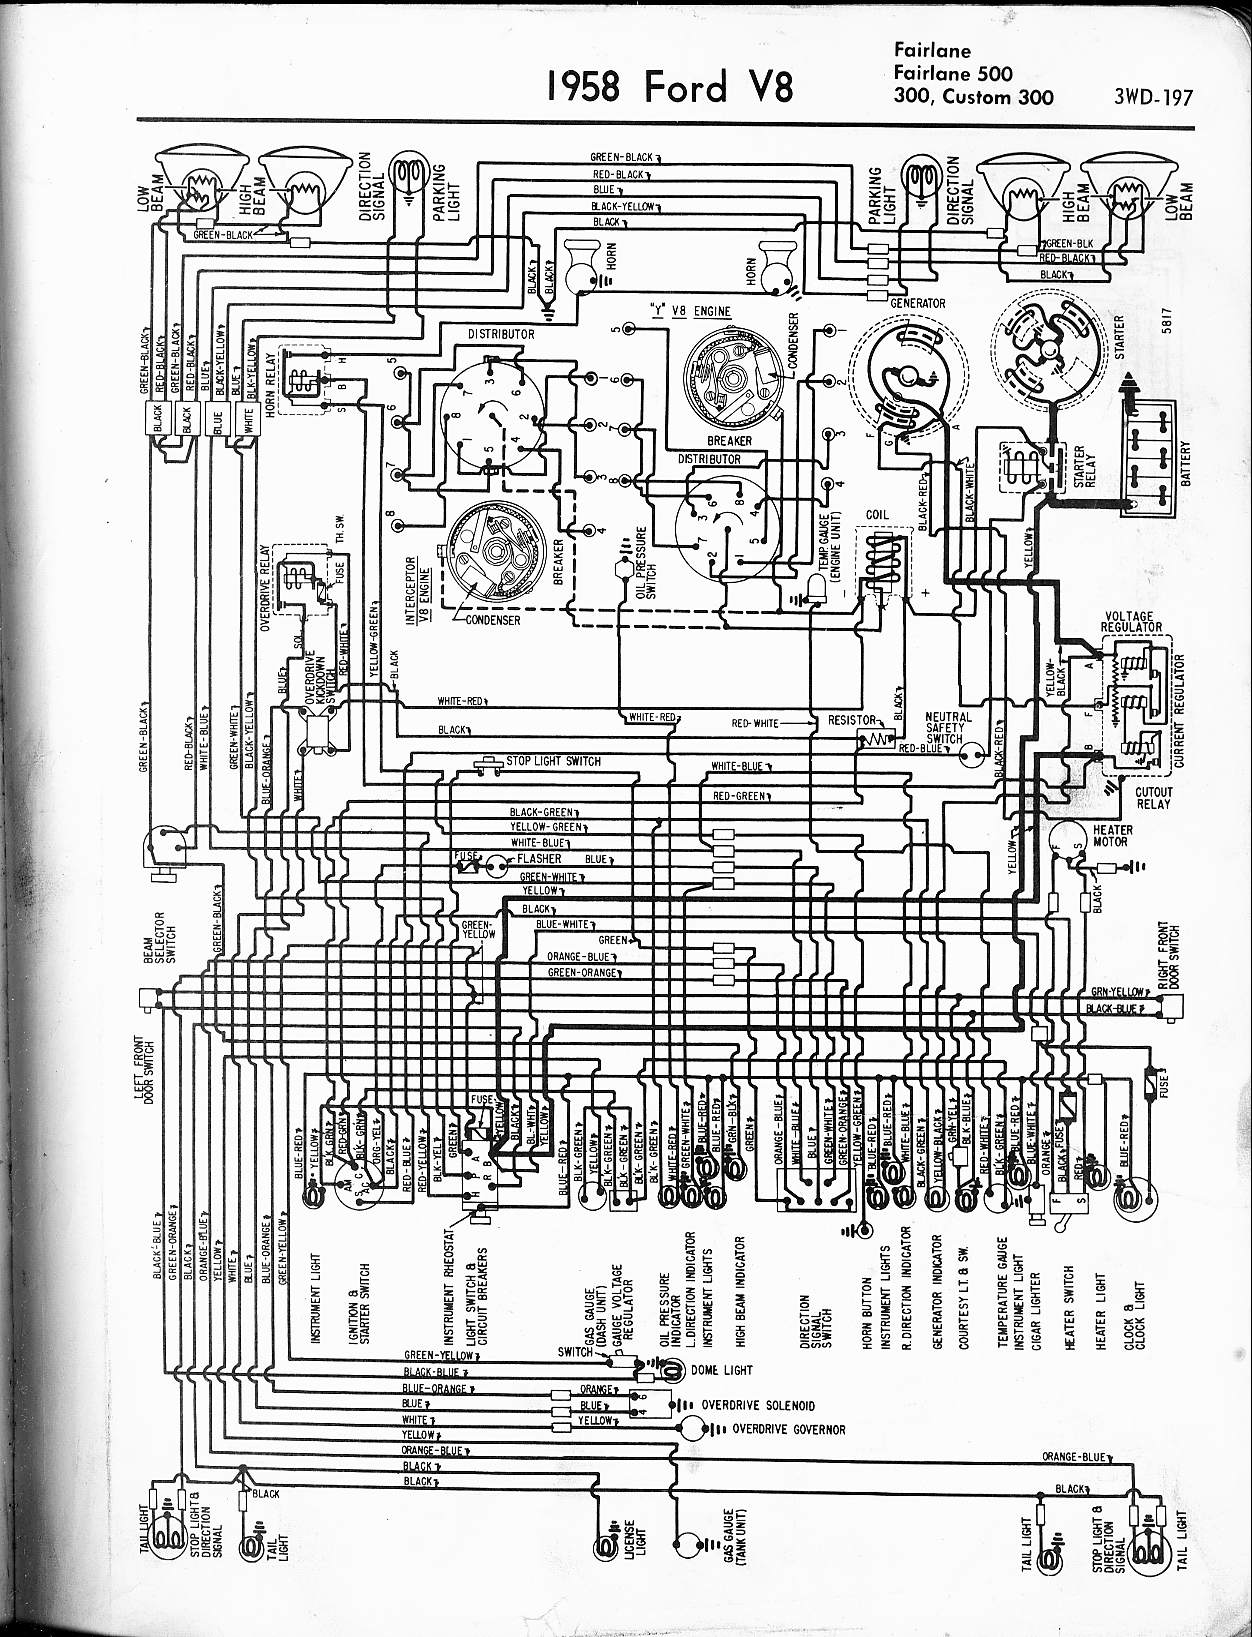 1958 Ford F 250 Wiring Diagram Data 96 F250 Trailer Schematic Name Falcon